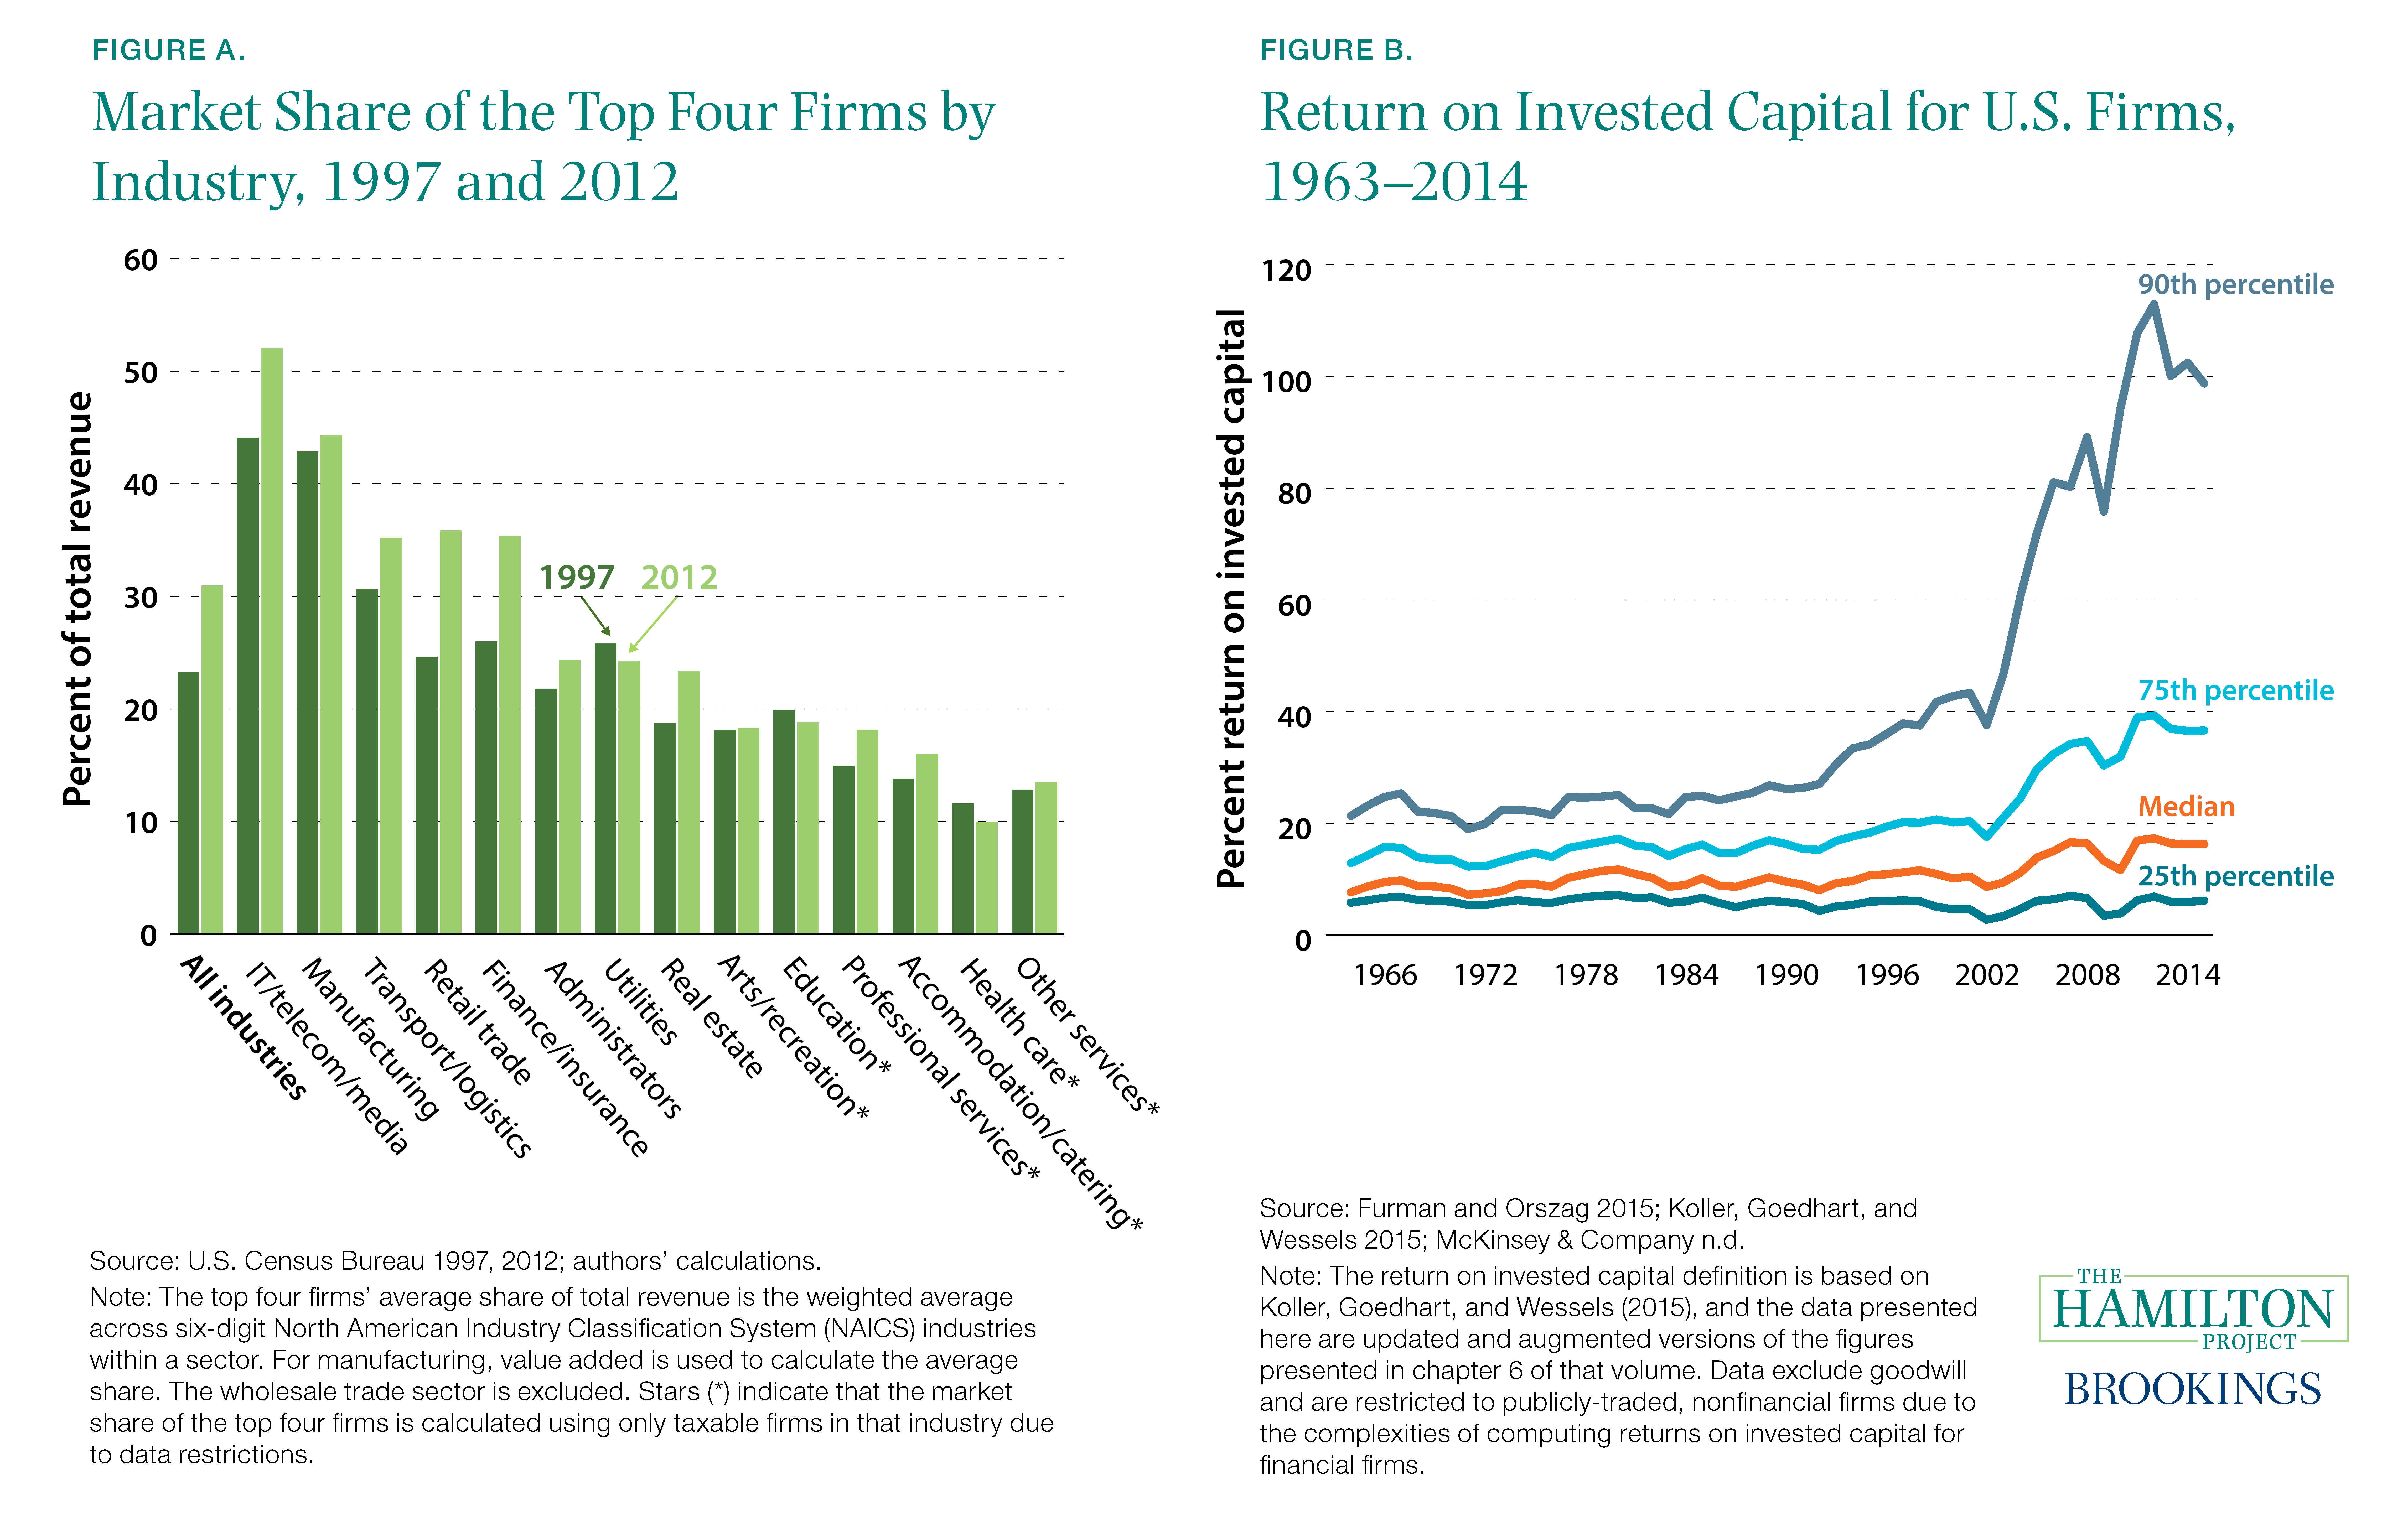 Figure A. Market Share of the Top Four Firms by Industry, 1997 and 2012 and Figure B. Return on Invested Capital for U.S. Firms, 1963–2014